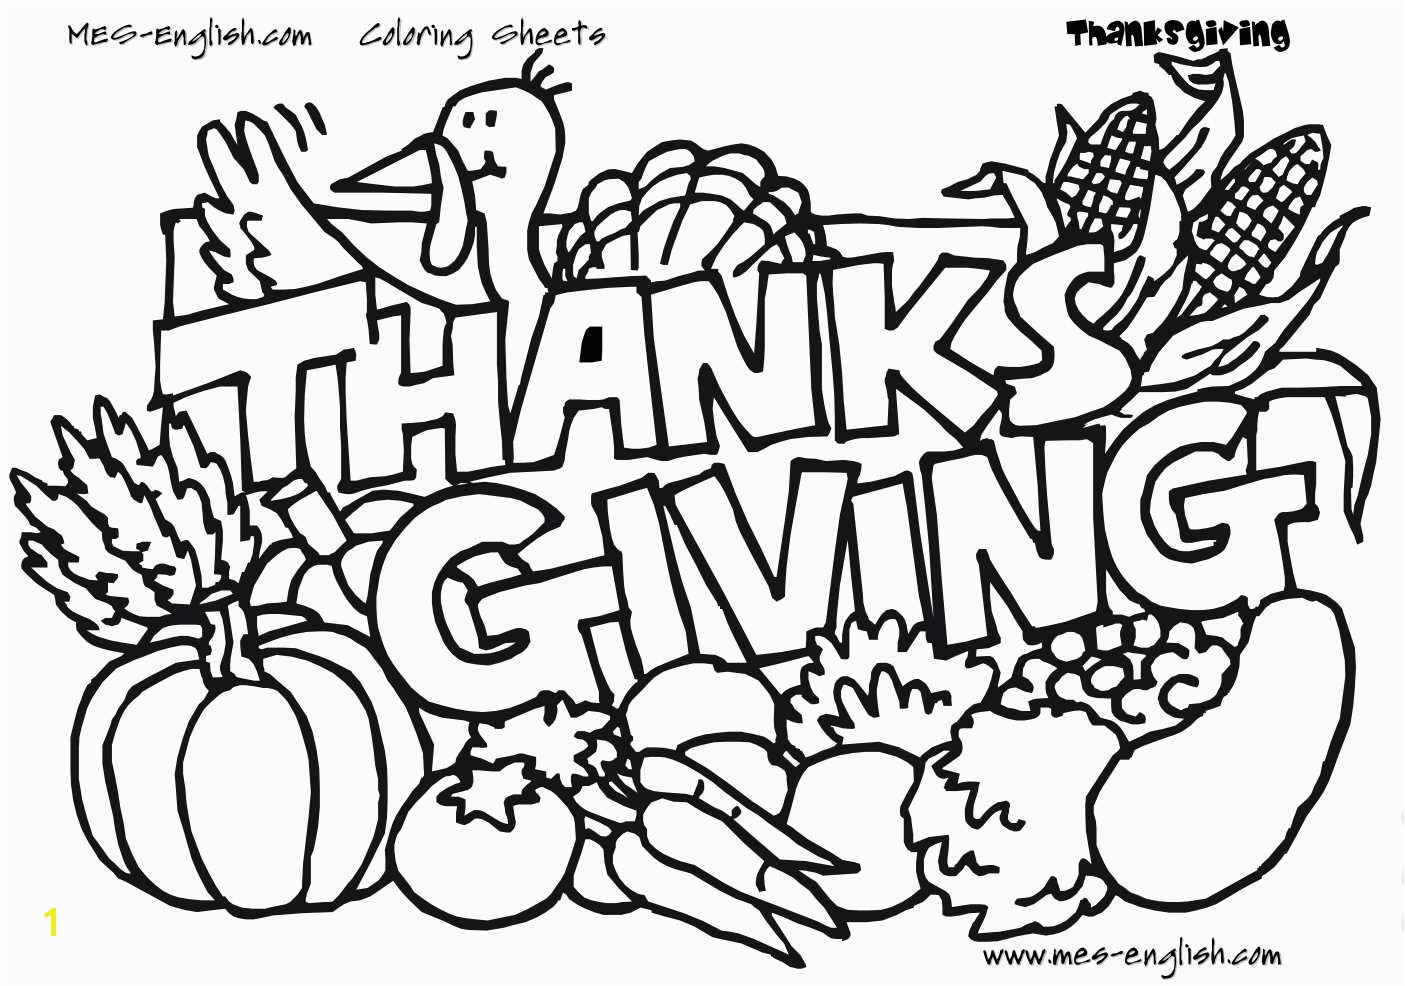 mes english thanksgiving coloring pages 57aca6513df78cf459aa6314